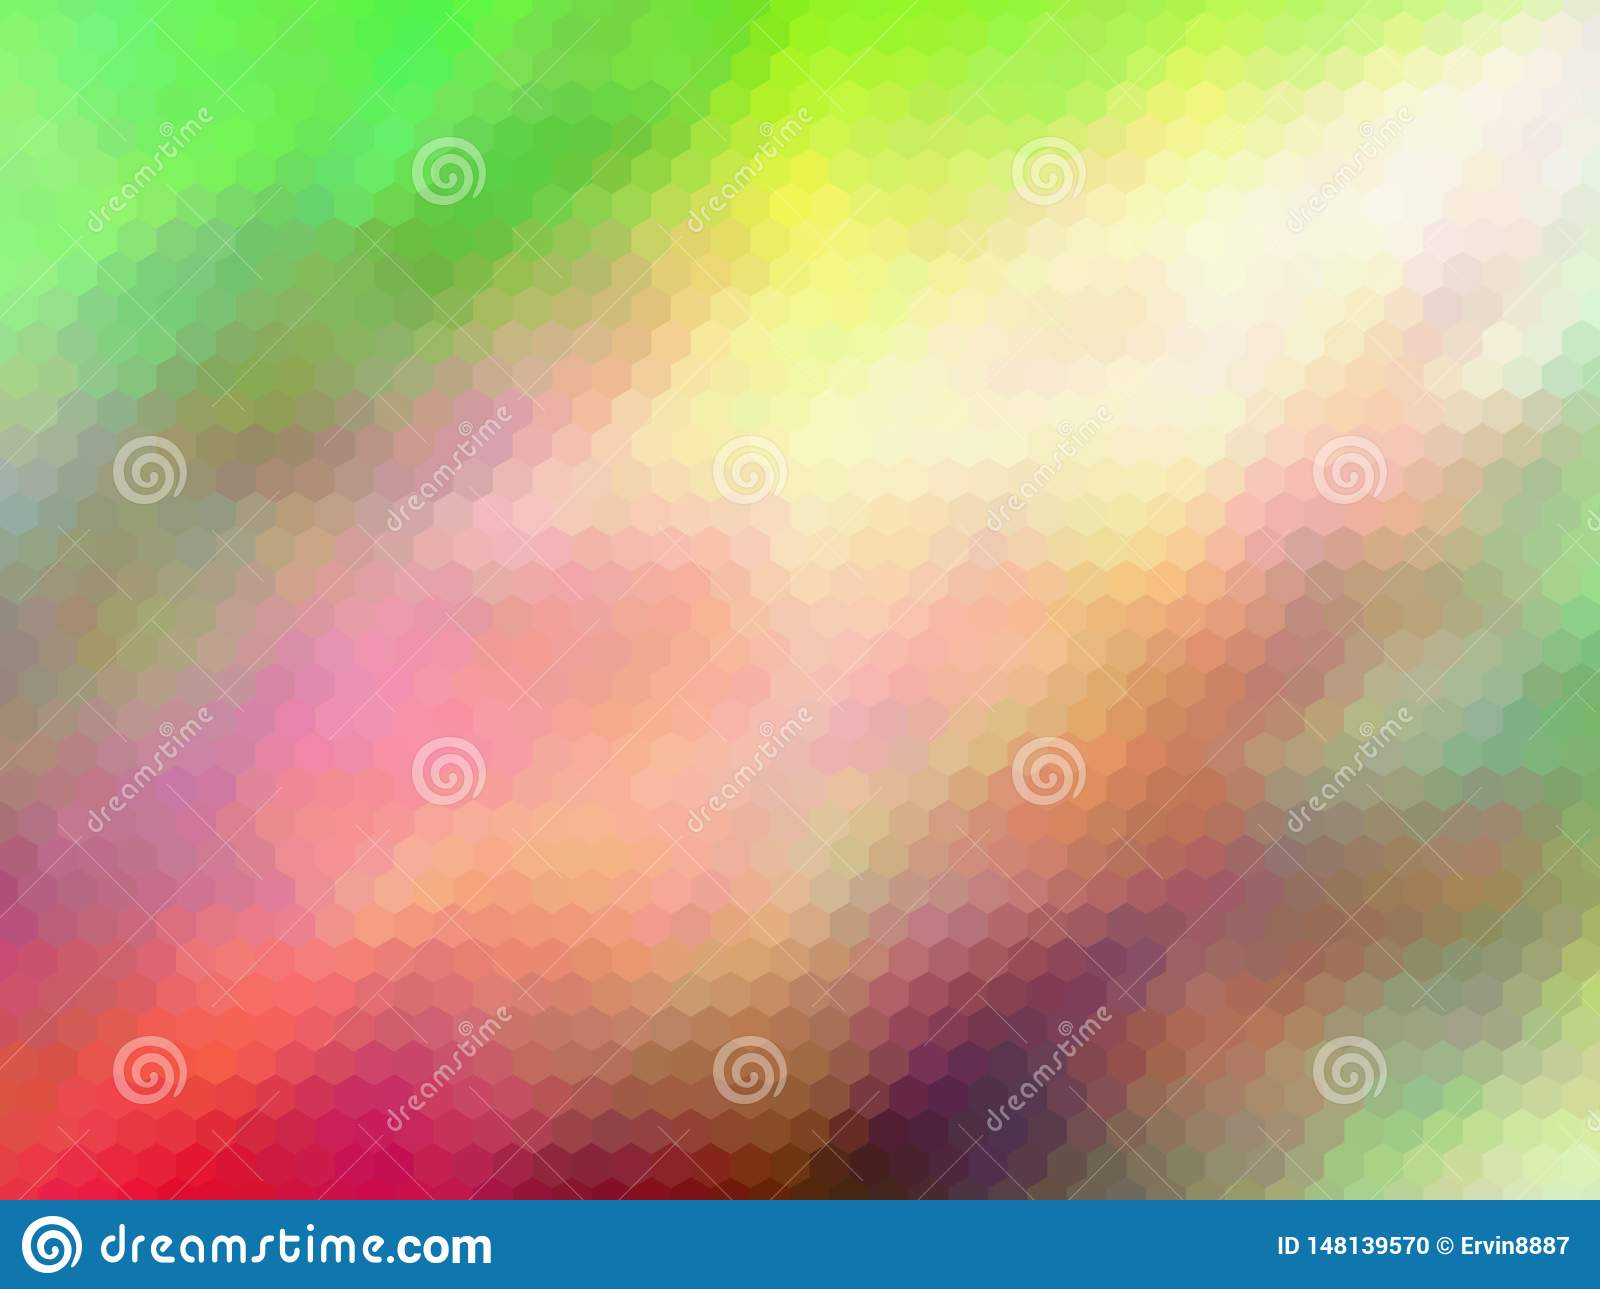 Blurred abstract background. Multicolor hexagonally pixeled abstract background.